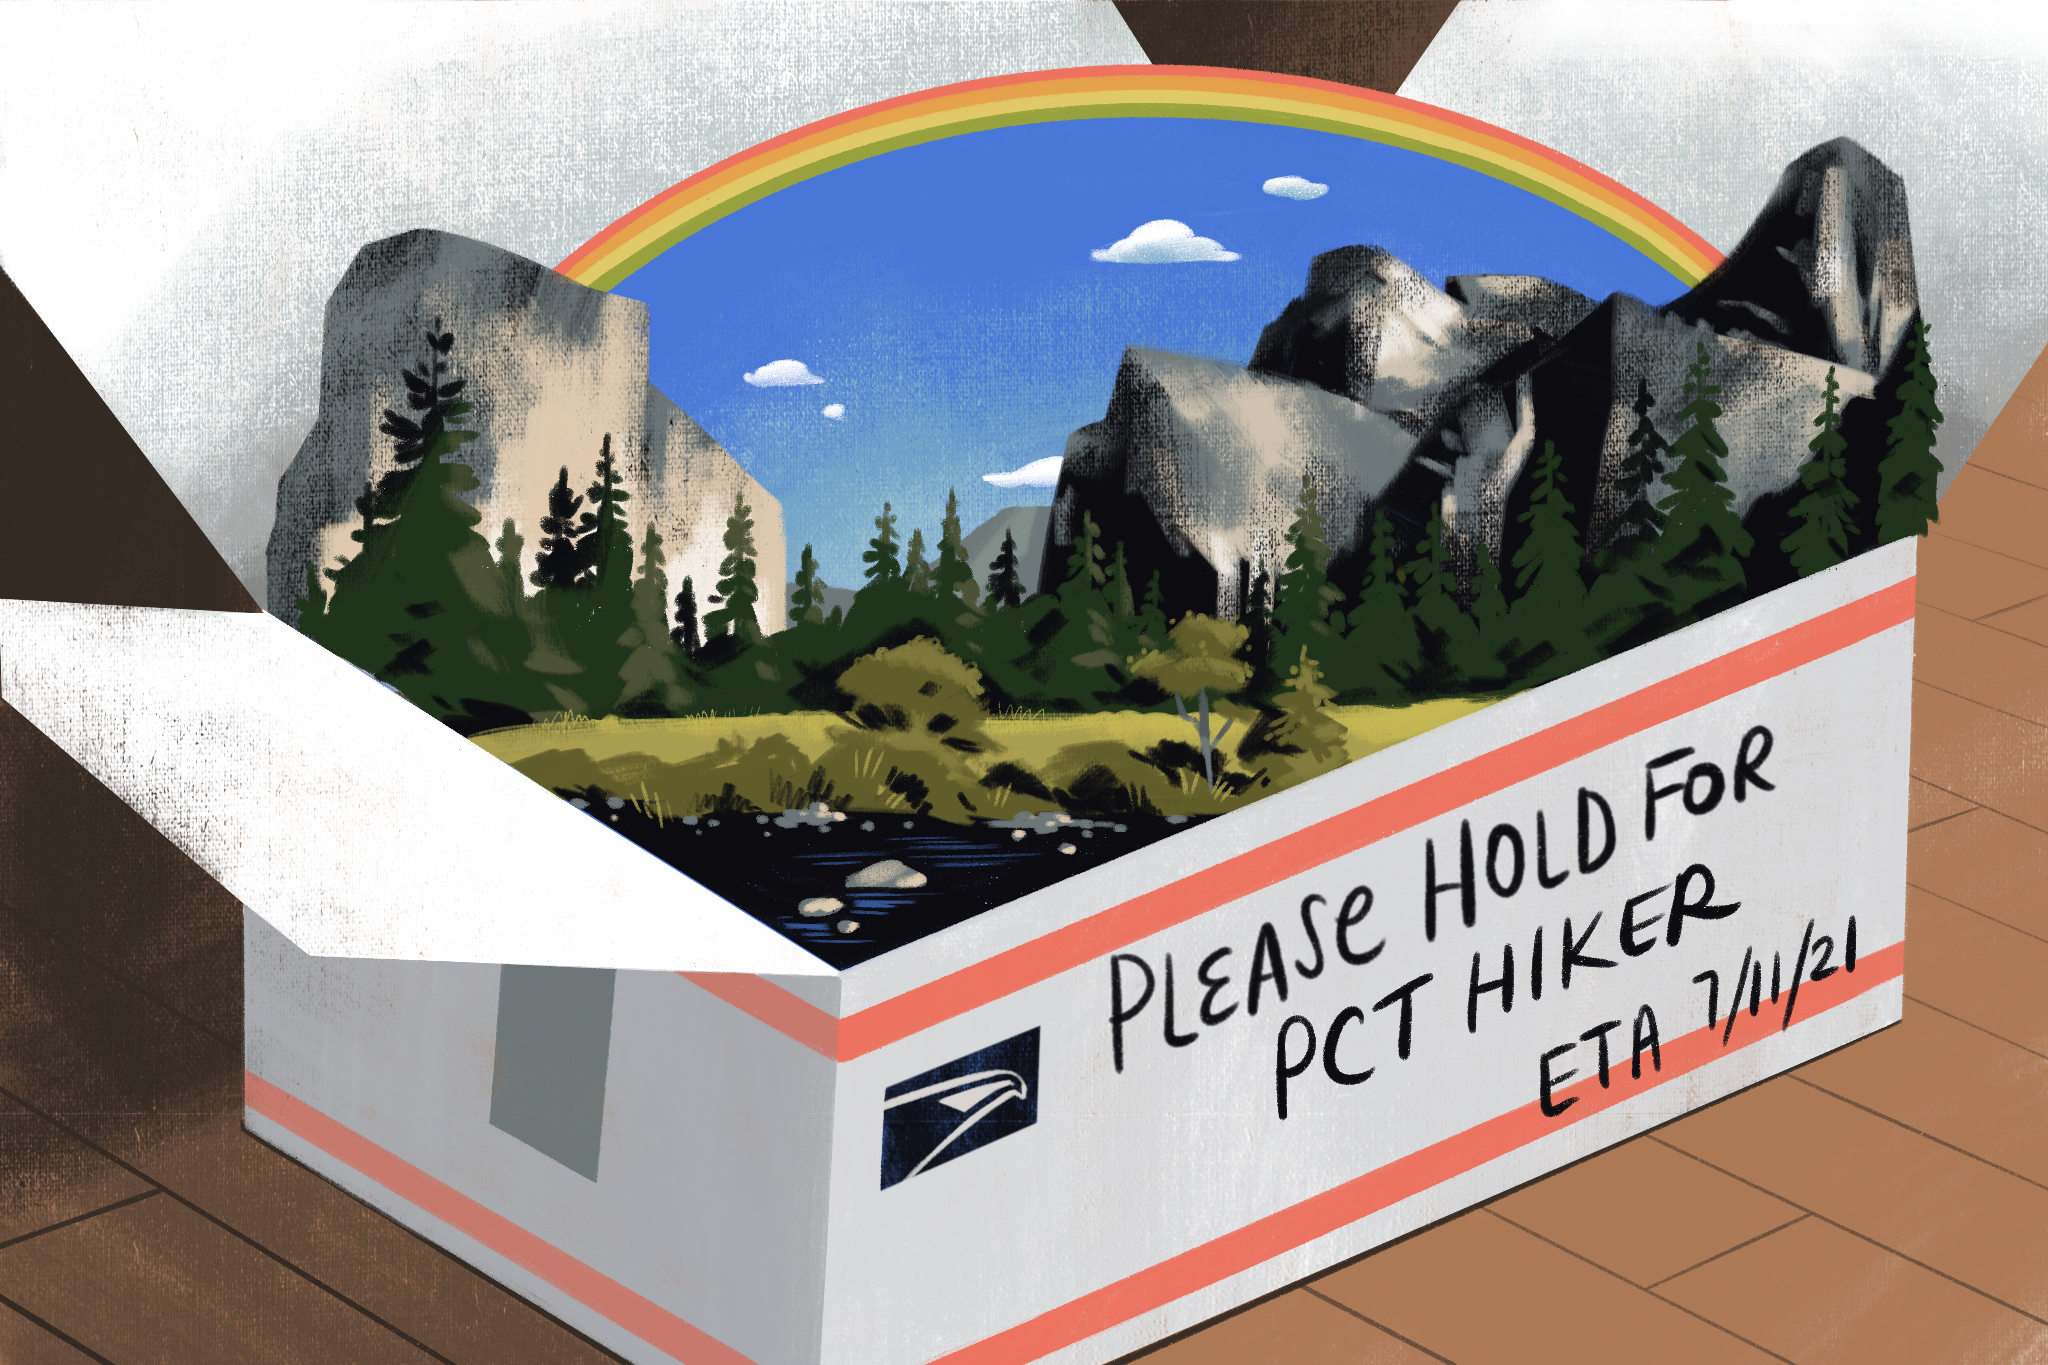 Yosemite's tiny post office receives a wild number of packages